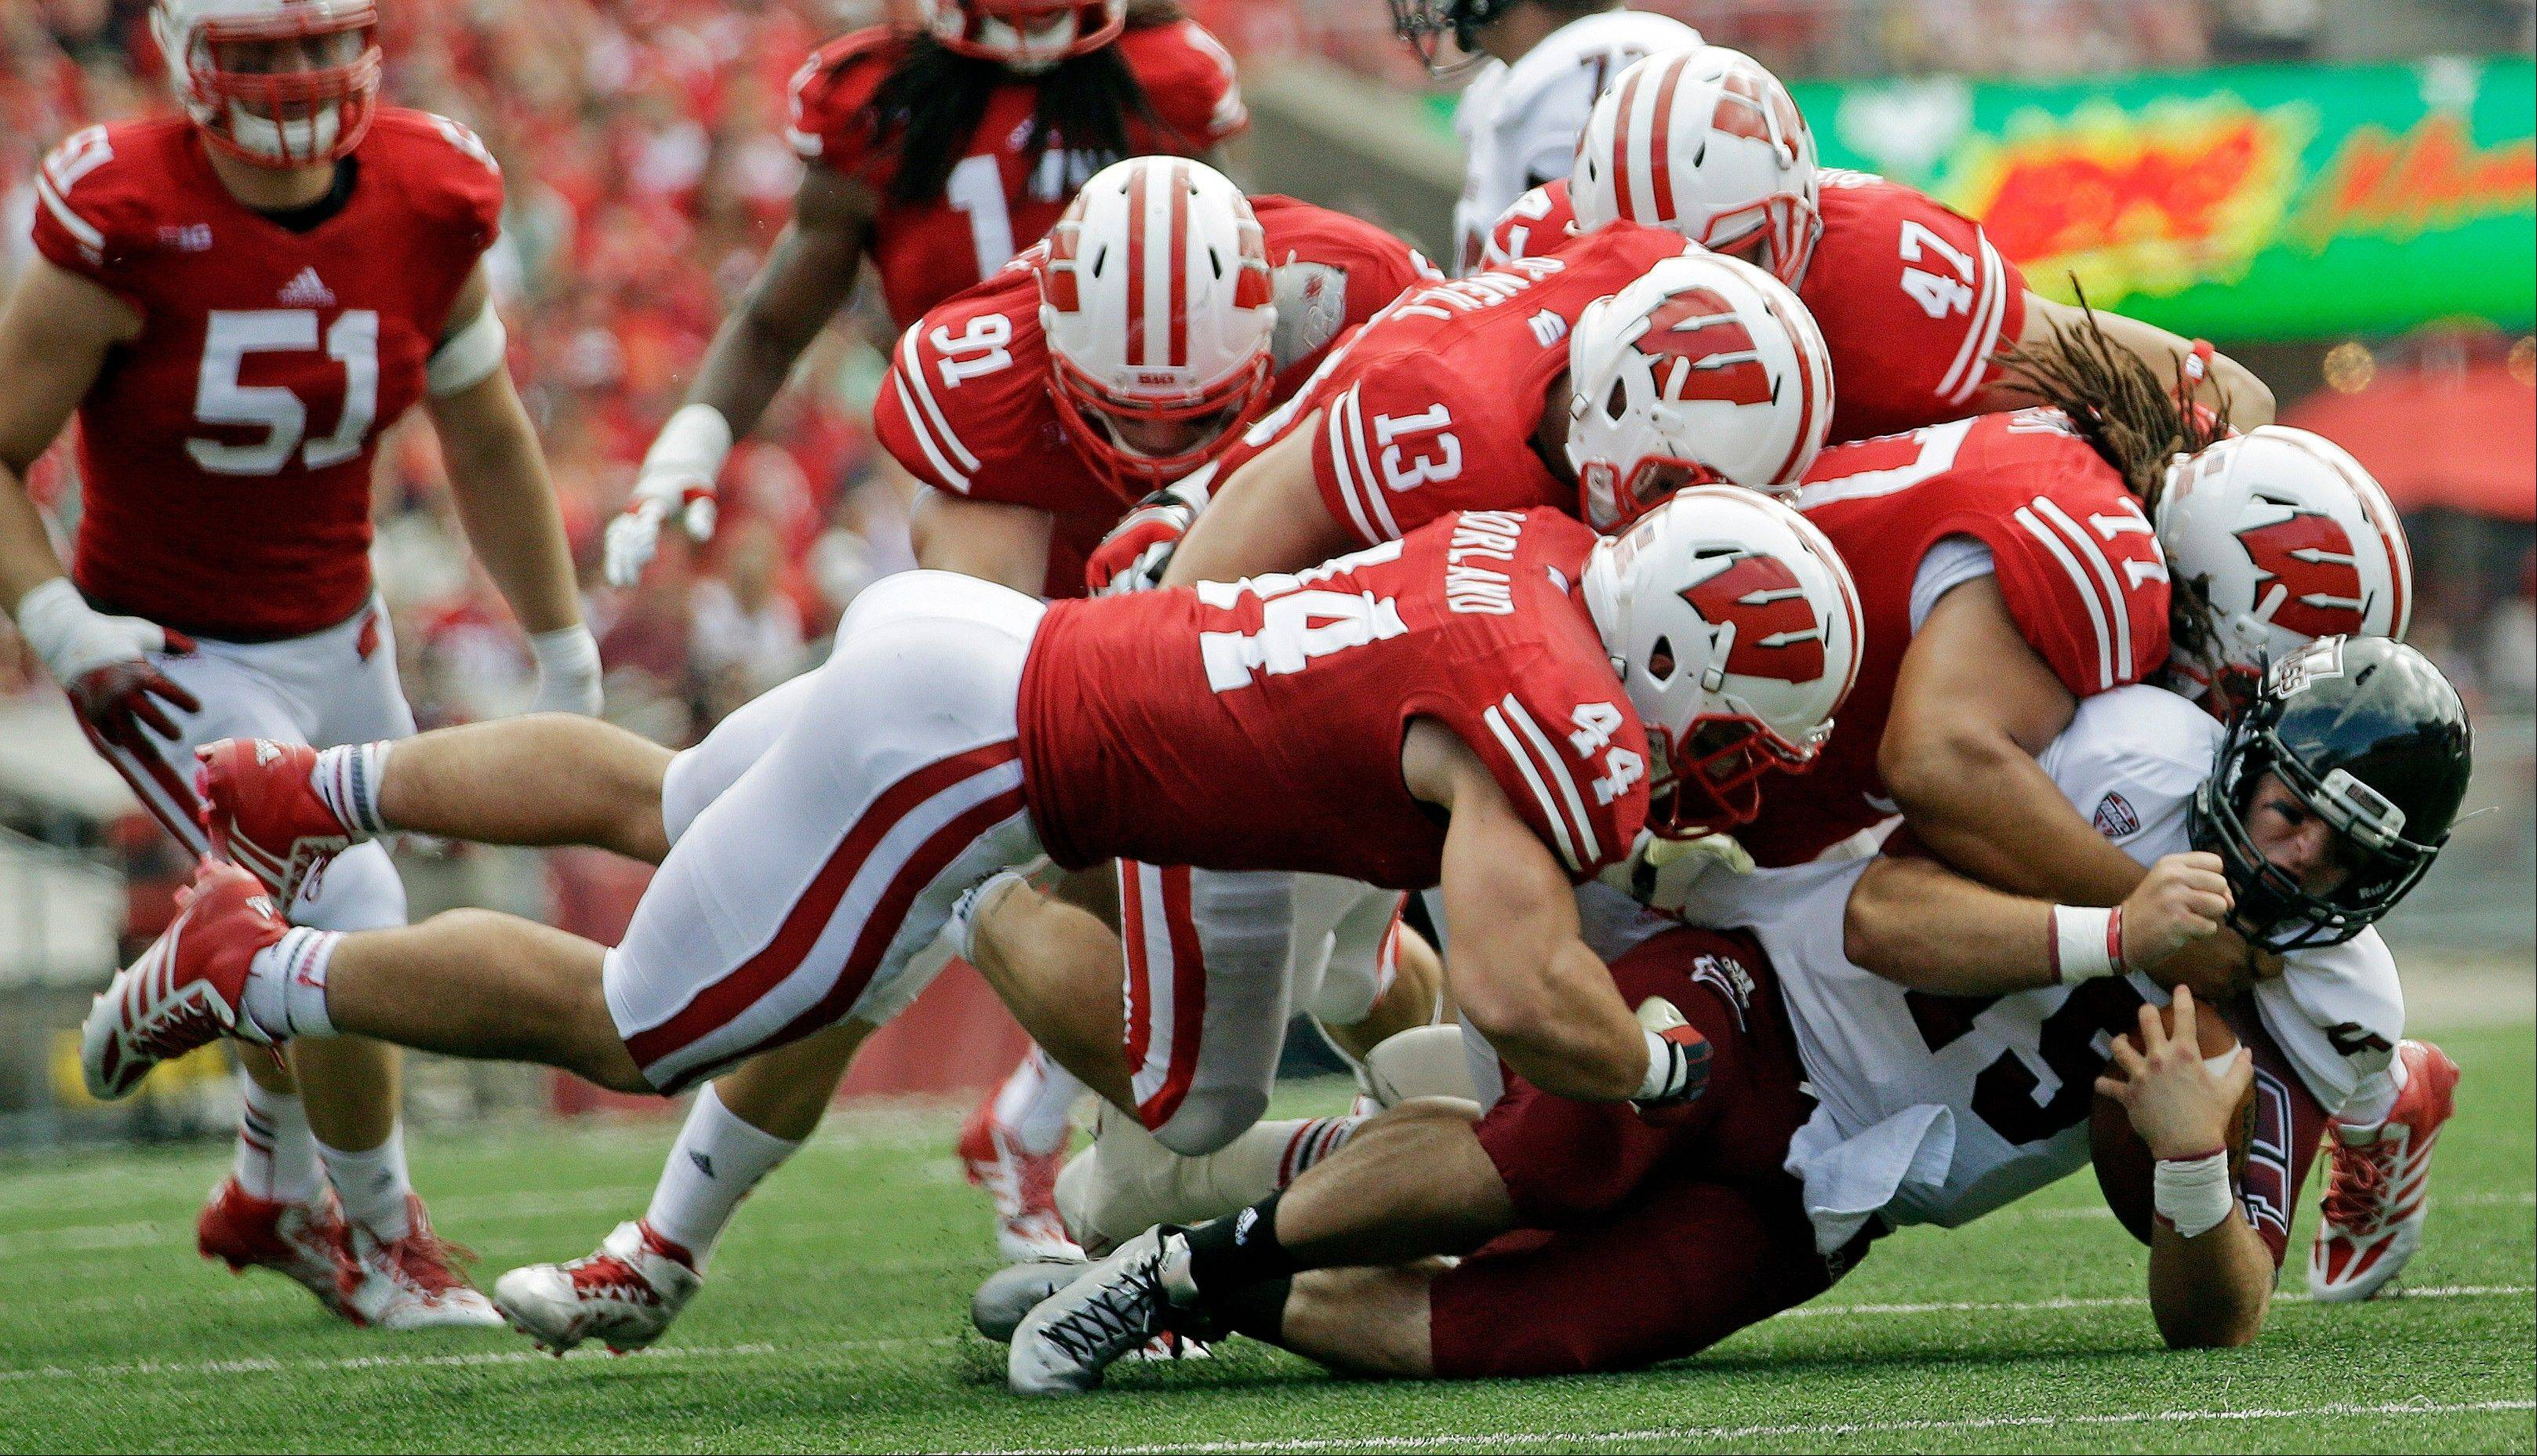 Wisconsin's Chris Borland (44), Conor O'Neill (13), Vince Biegel (47) and Bryce Gilbert (77) tackle Massachusetts quarterback A.J. Doyle during the second half of Saturday's game in Madison, Wis.